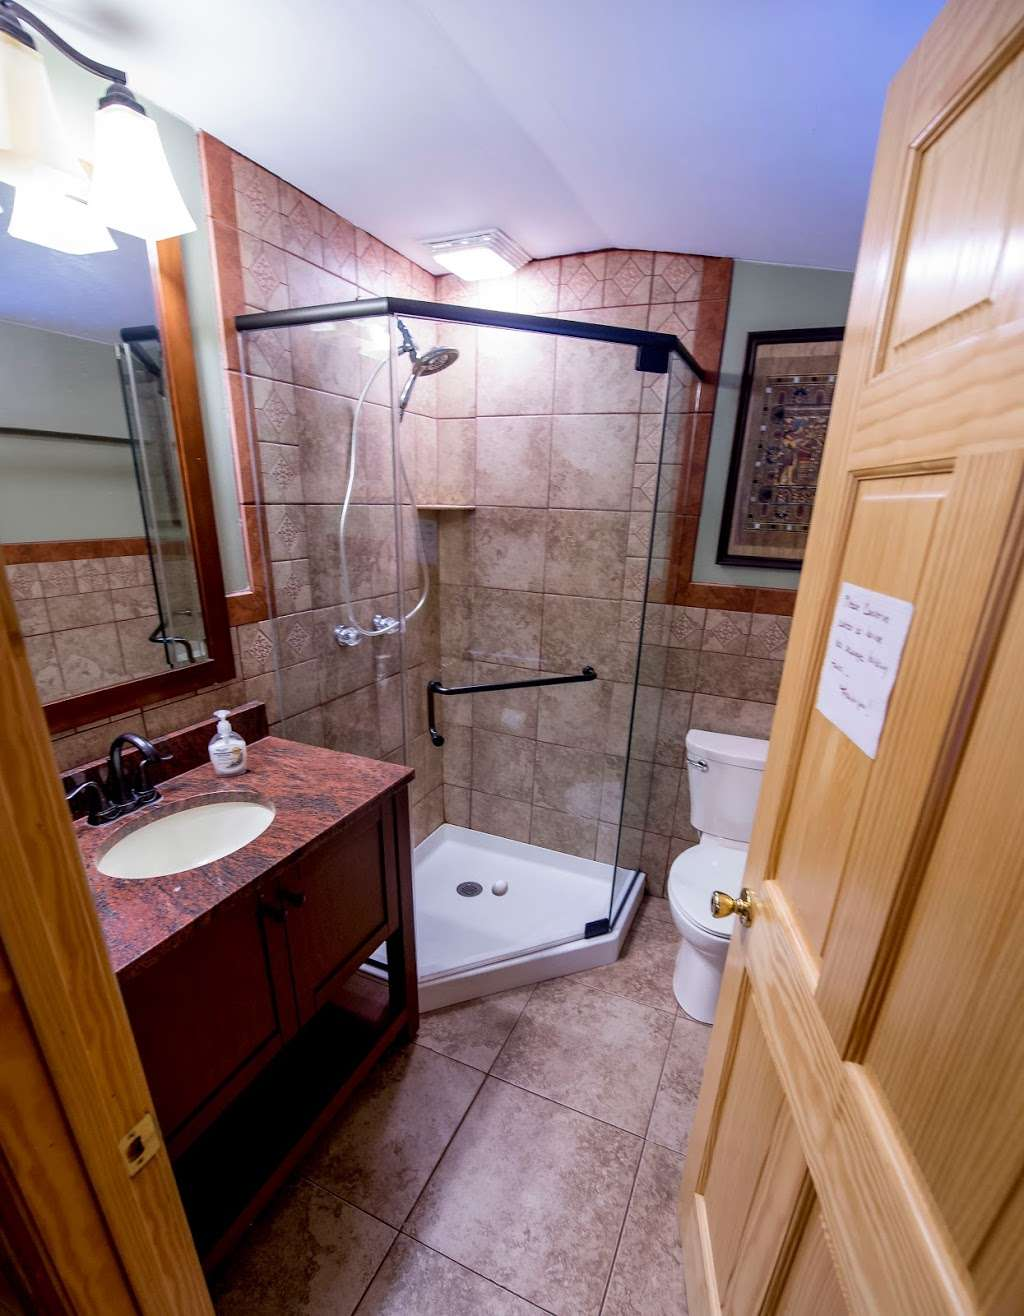 Red Point Lighthouse Vacation Rentals - real estate agency    Photo 10 of 10   Address: 115 S Main St, North East, MD 21901, USA   Phone: (443) 553-5363